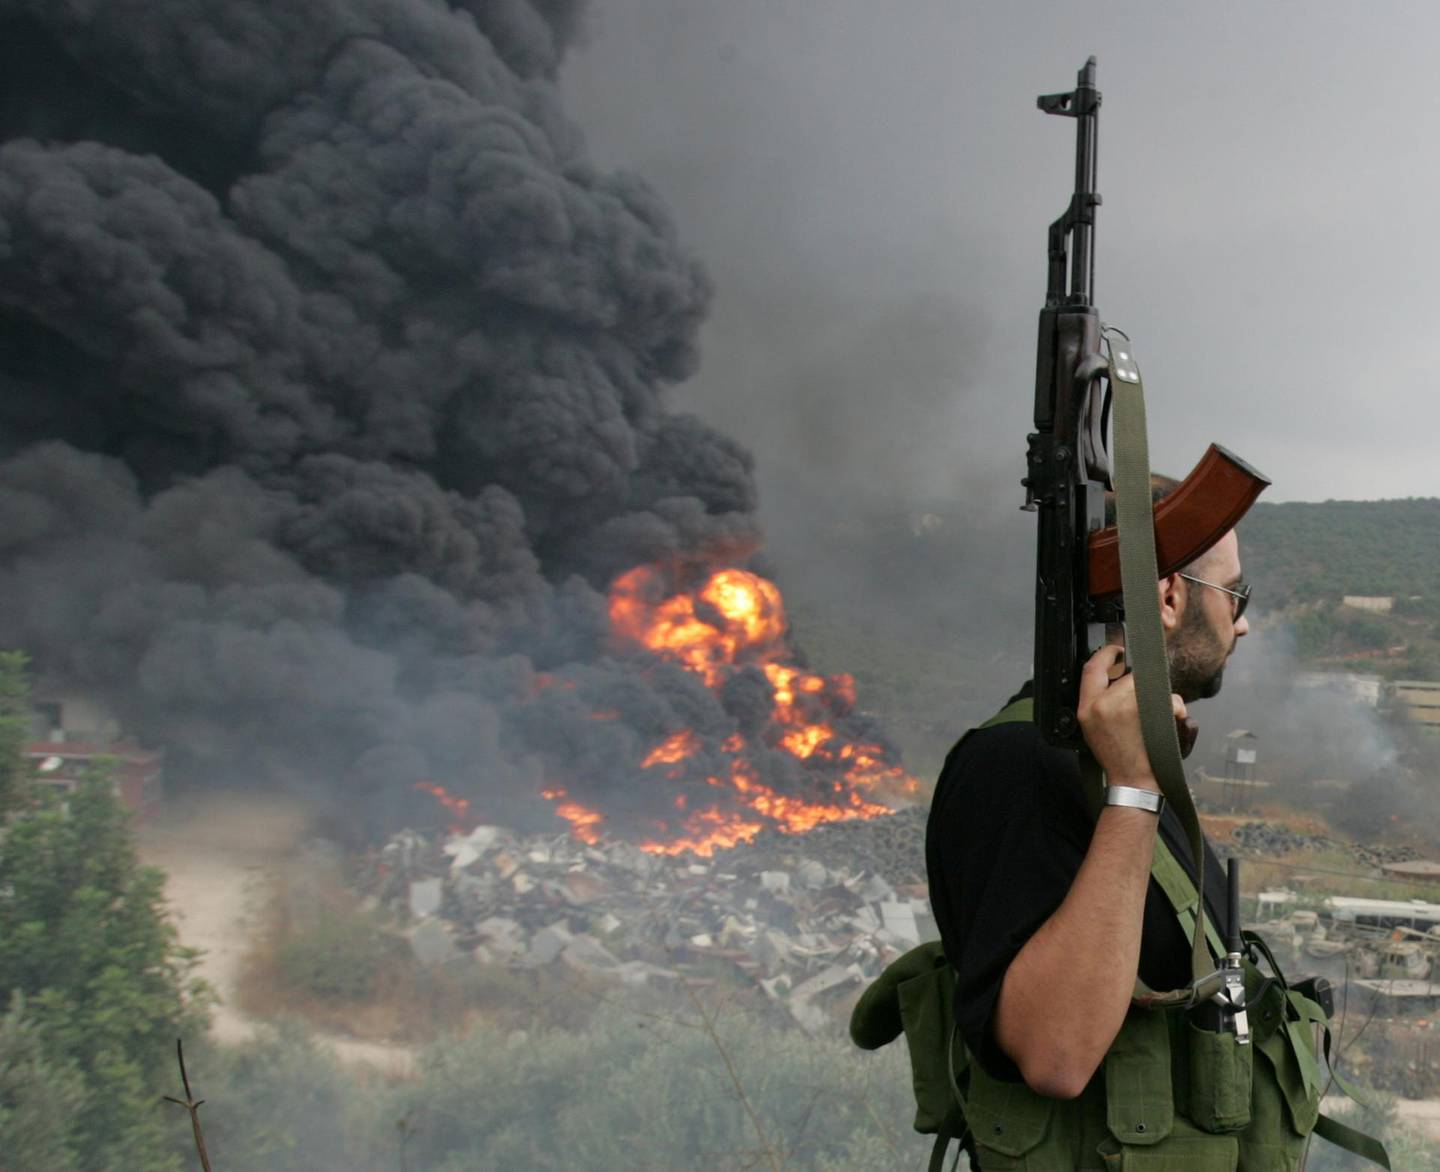 FILE PHOTO: A Lebanese Hezbollah guerrilla looks at a fire rising from a burning object in a Beirut suburb, Lebanon July 17, 2006. REUTERS/Issam Kobeisi/File Photo